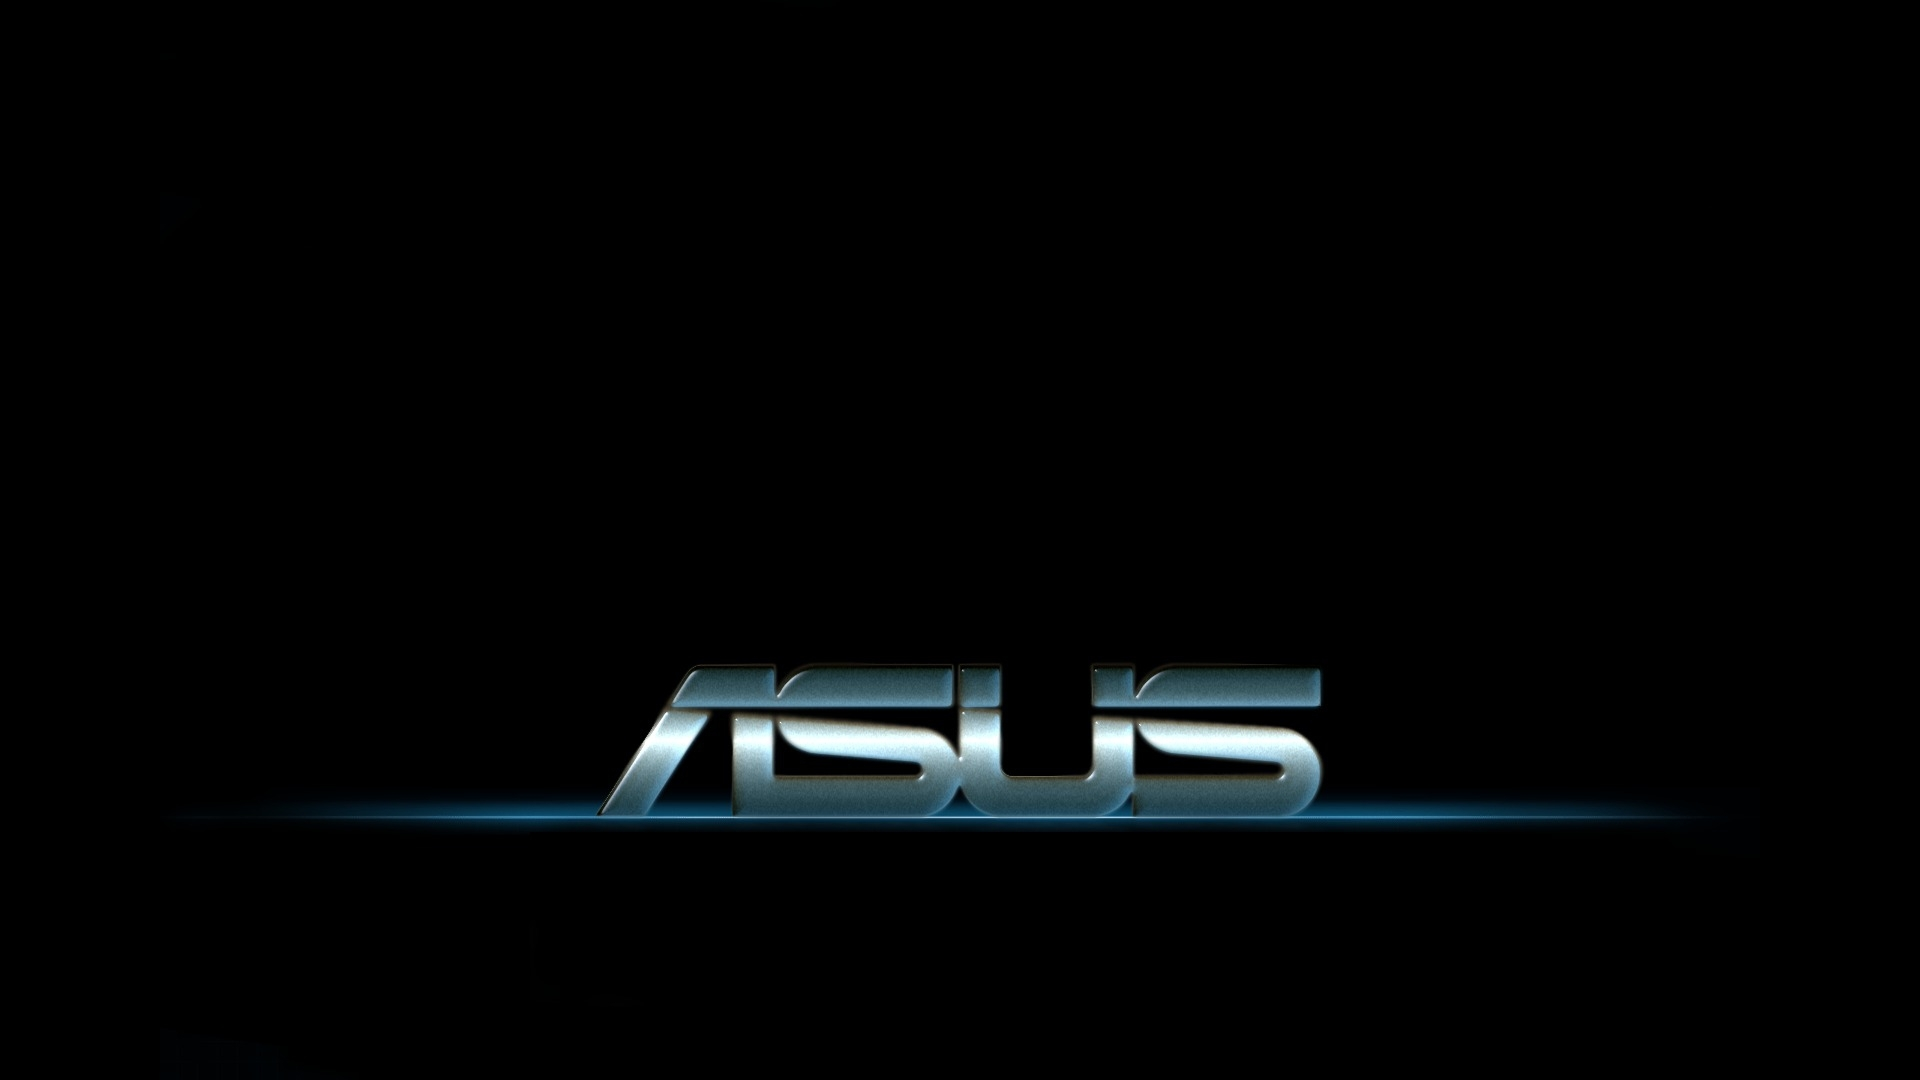 Download Wallpapers Download asus computer FAT ASUS Wallpaper 1920x1080